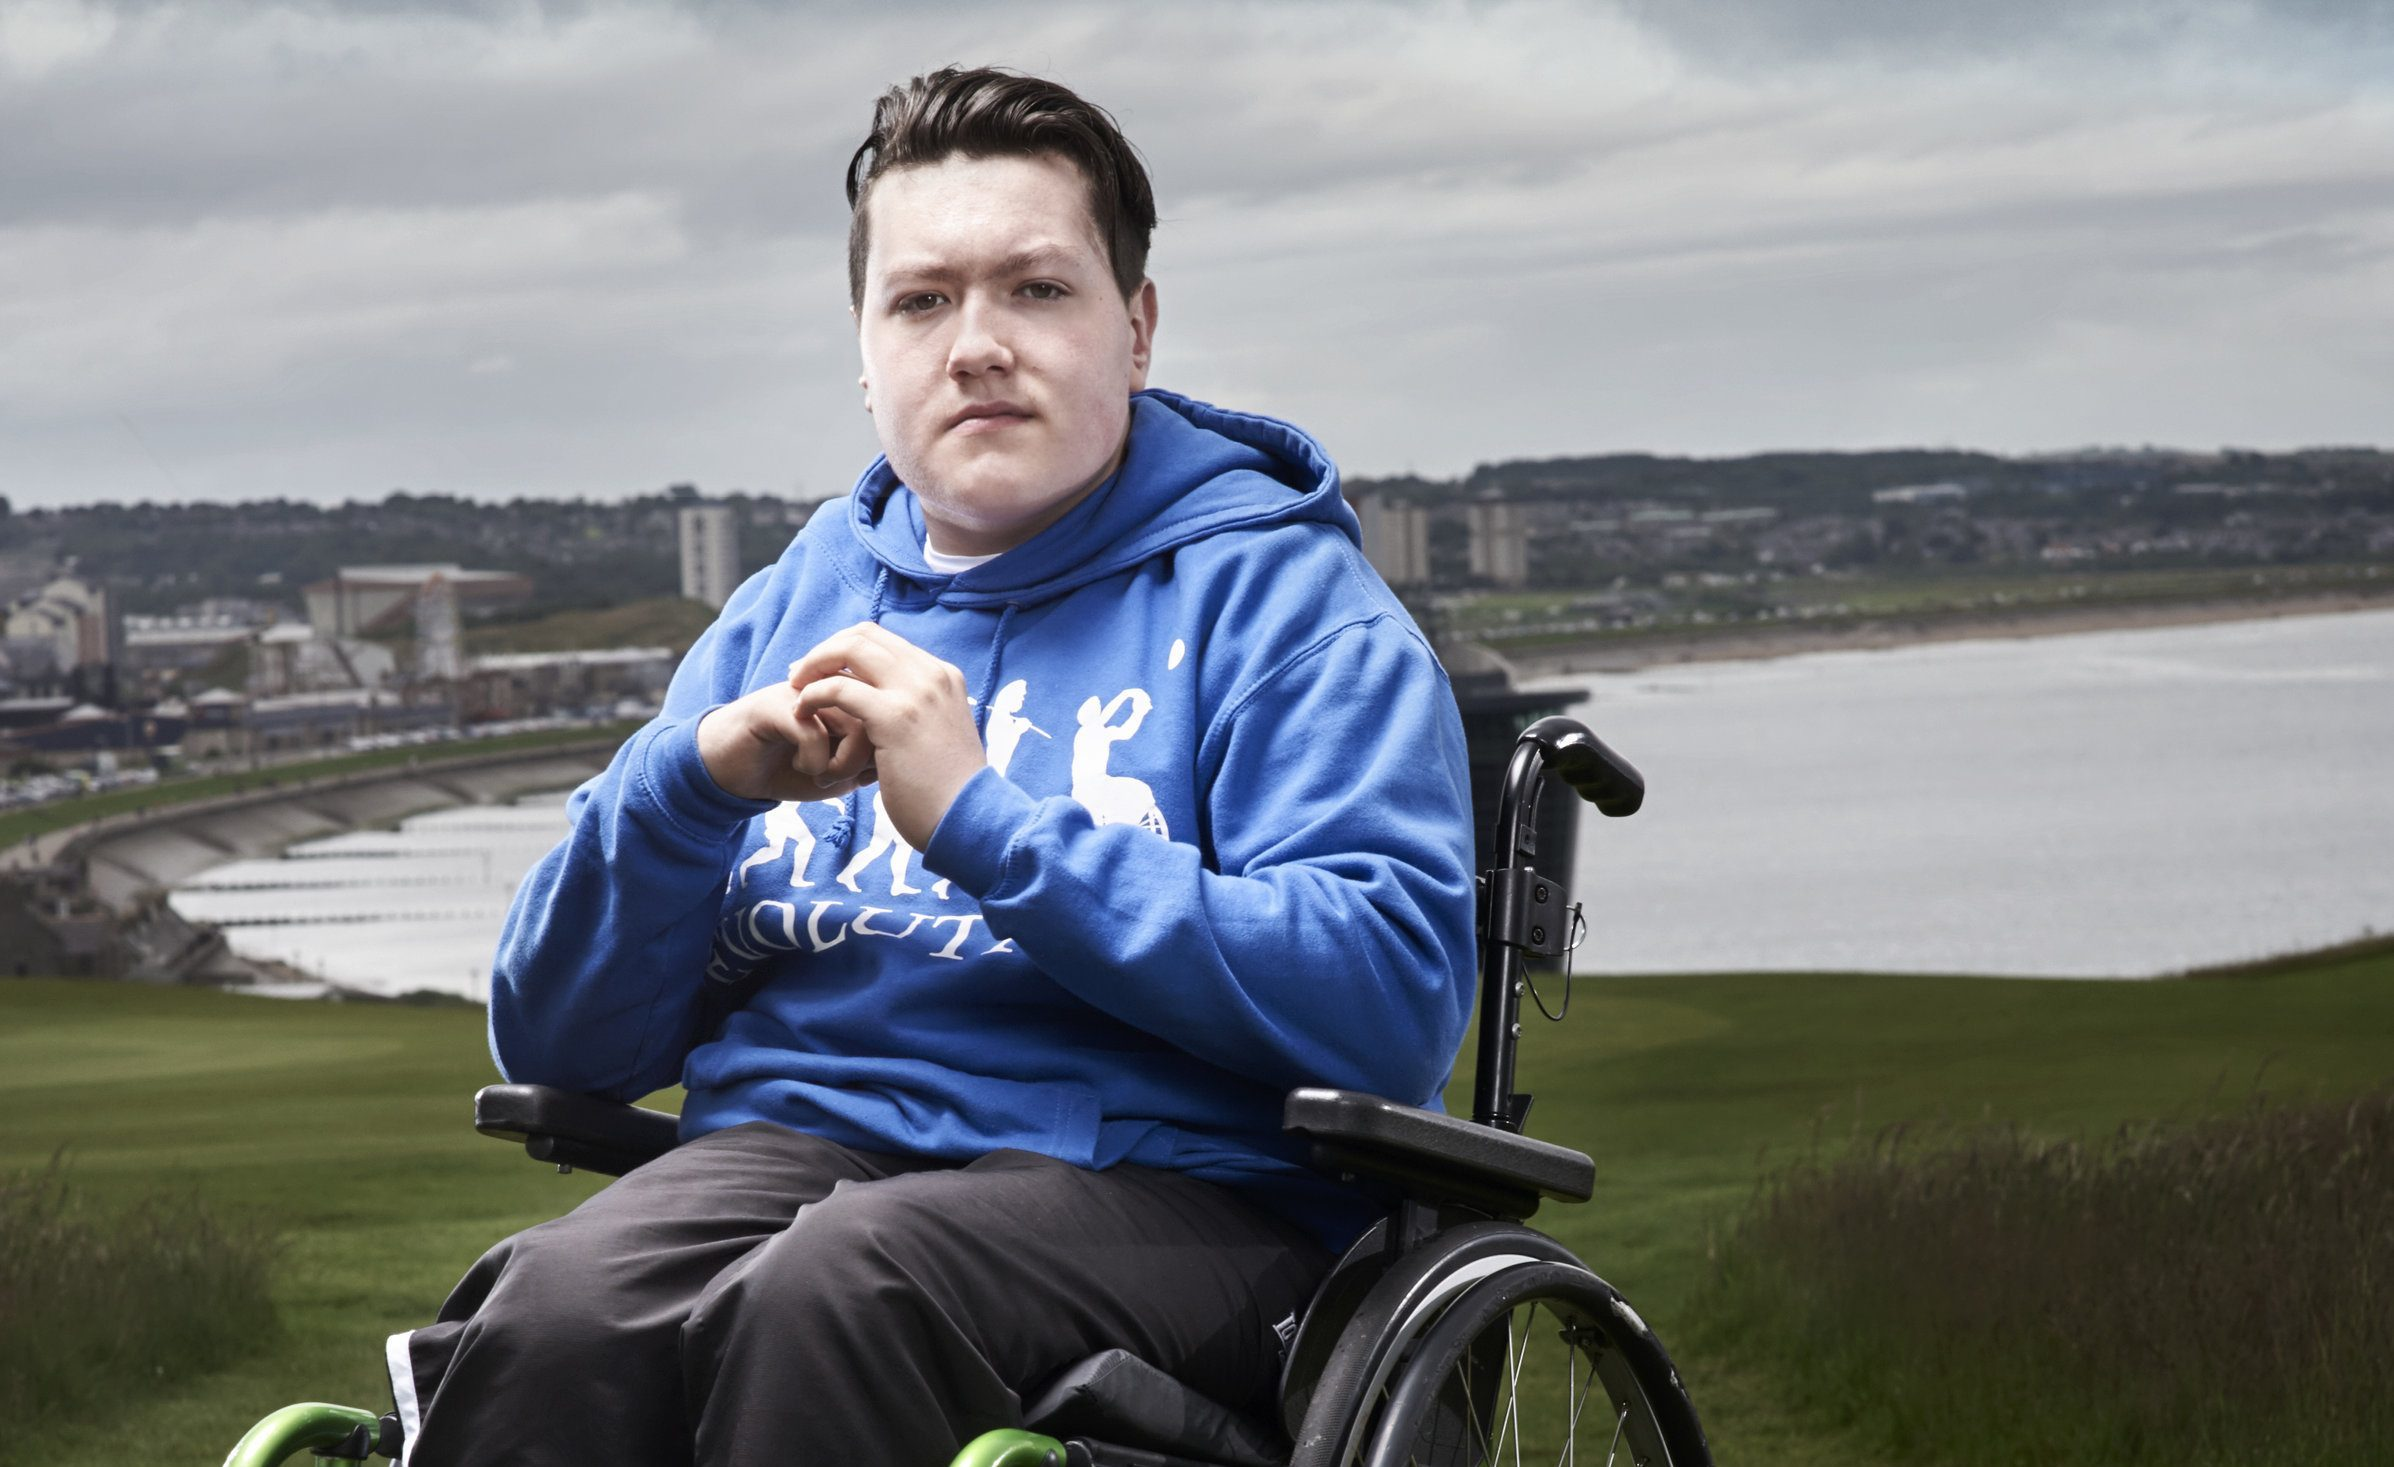 Teenager Jay Moir said taking part in wheelchair basketball had helped him.